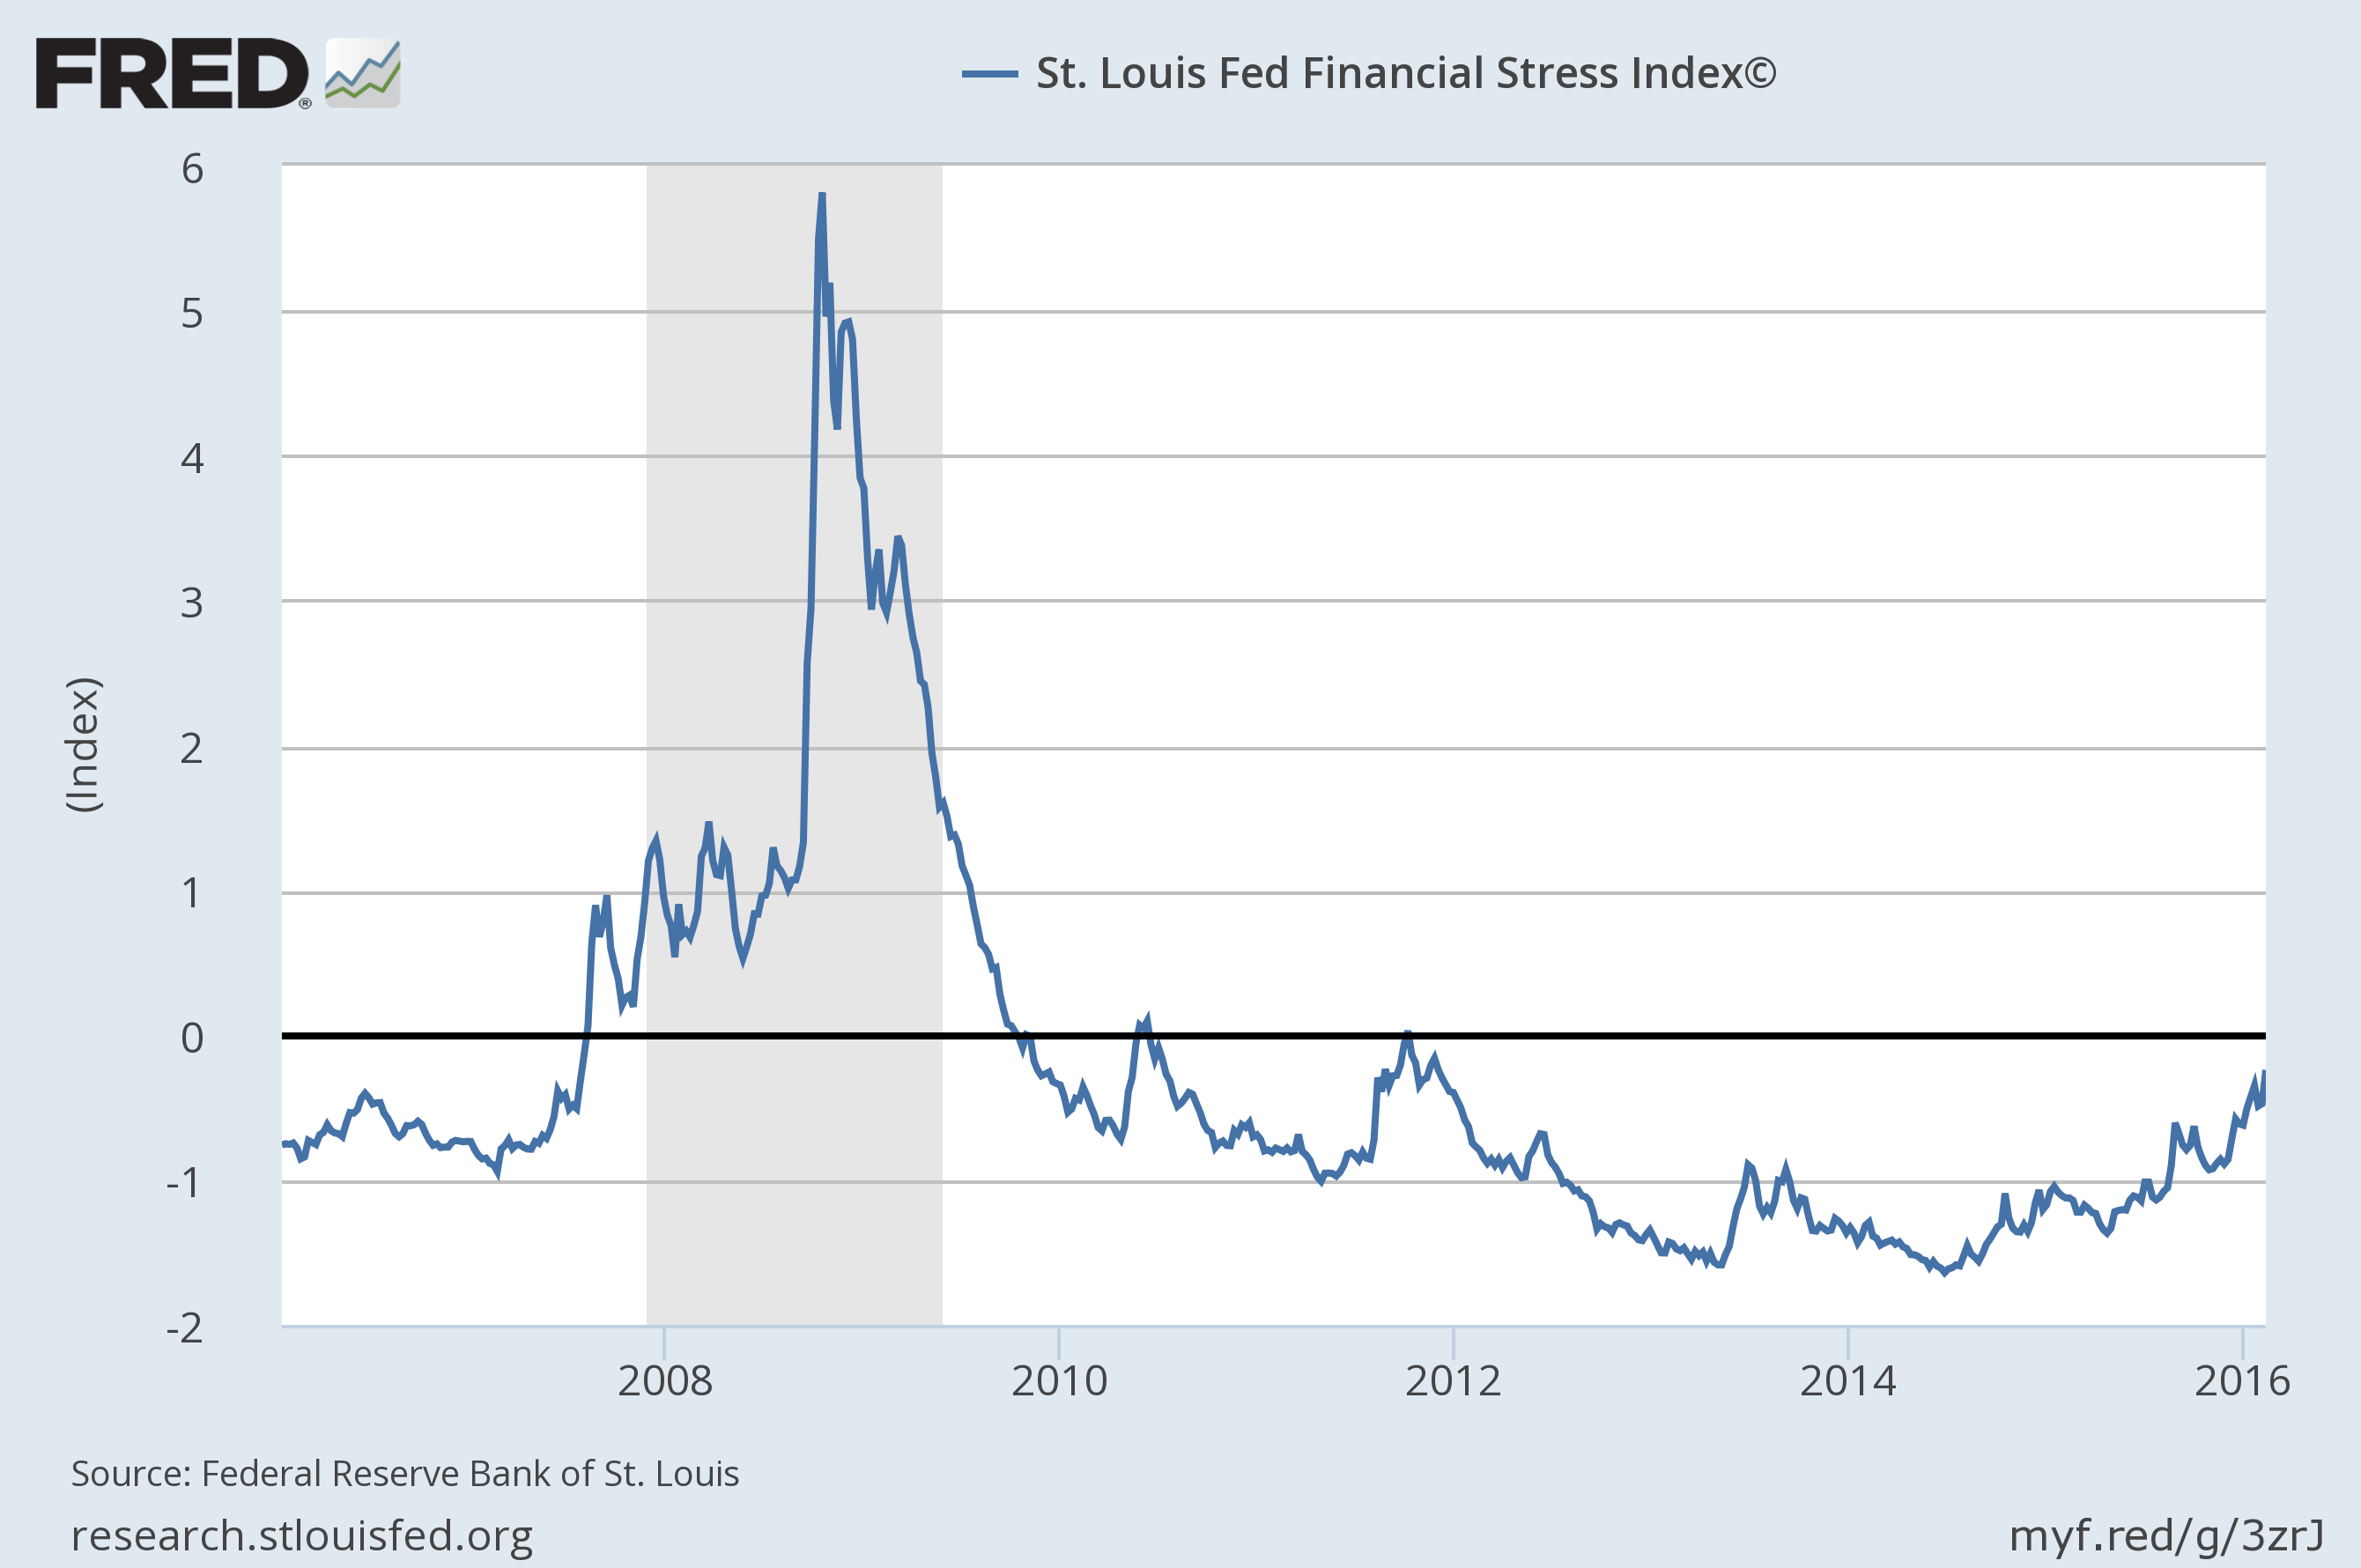 st-louis-fed-financial-stress-index